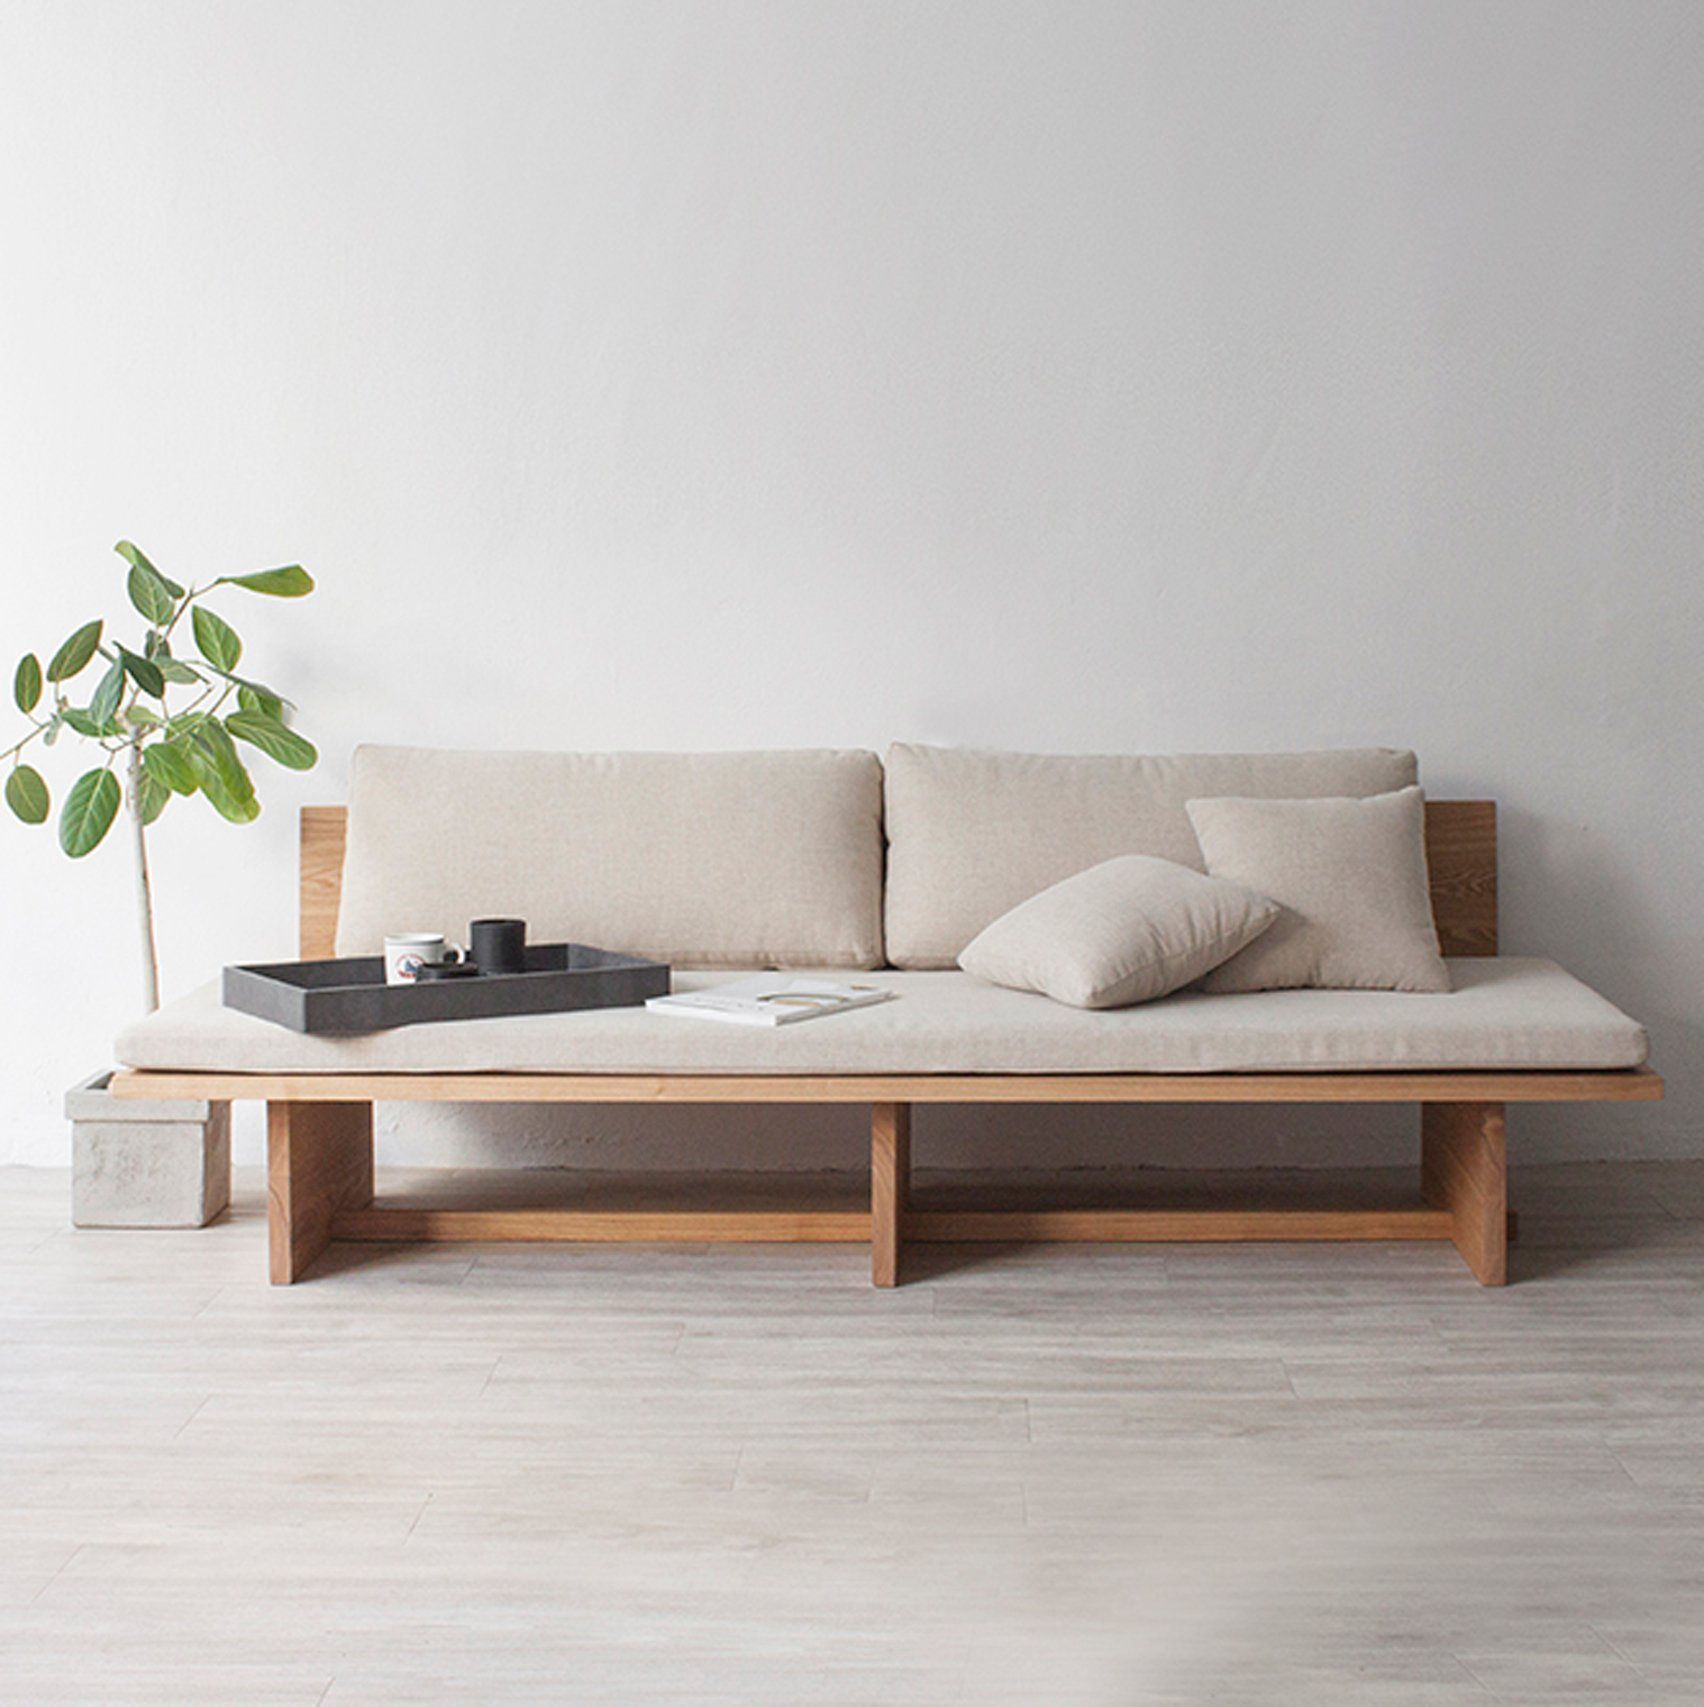 korean furniture design. Korean Designer Hyung Suk Cho\u0027s Blank Sofa Blends Features From Classic Design With The Needs Of Modern Houses. Furniture T